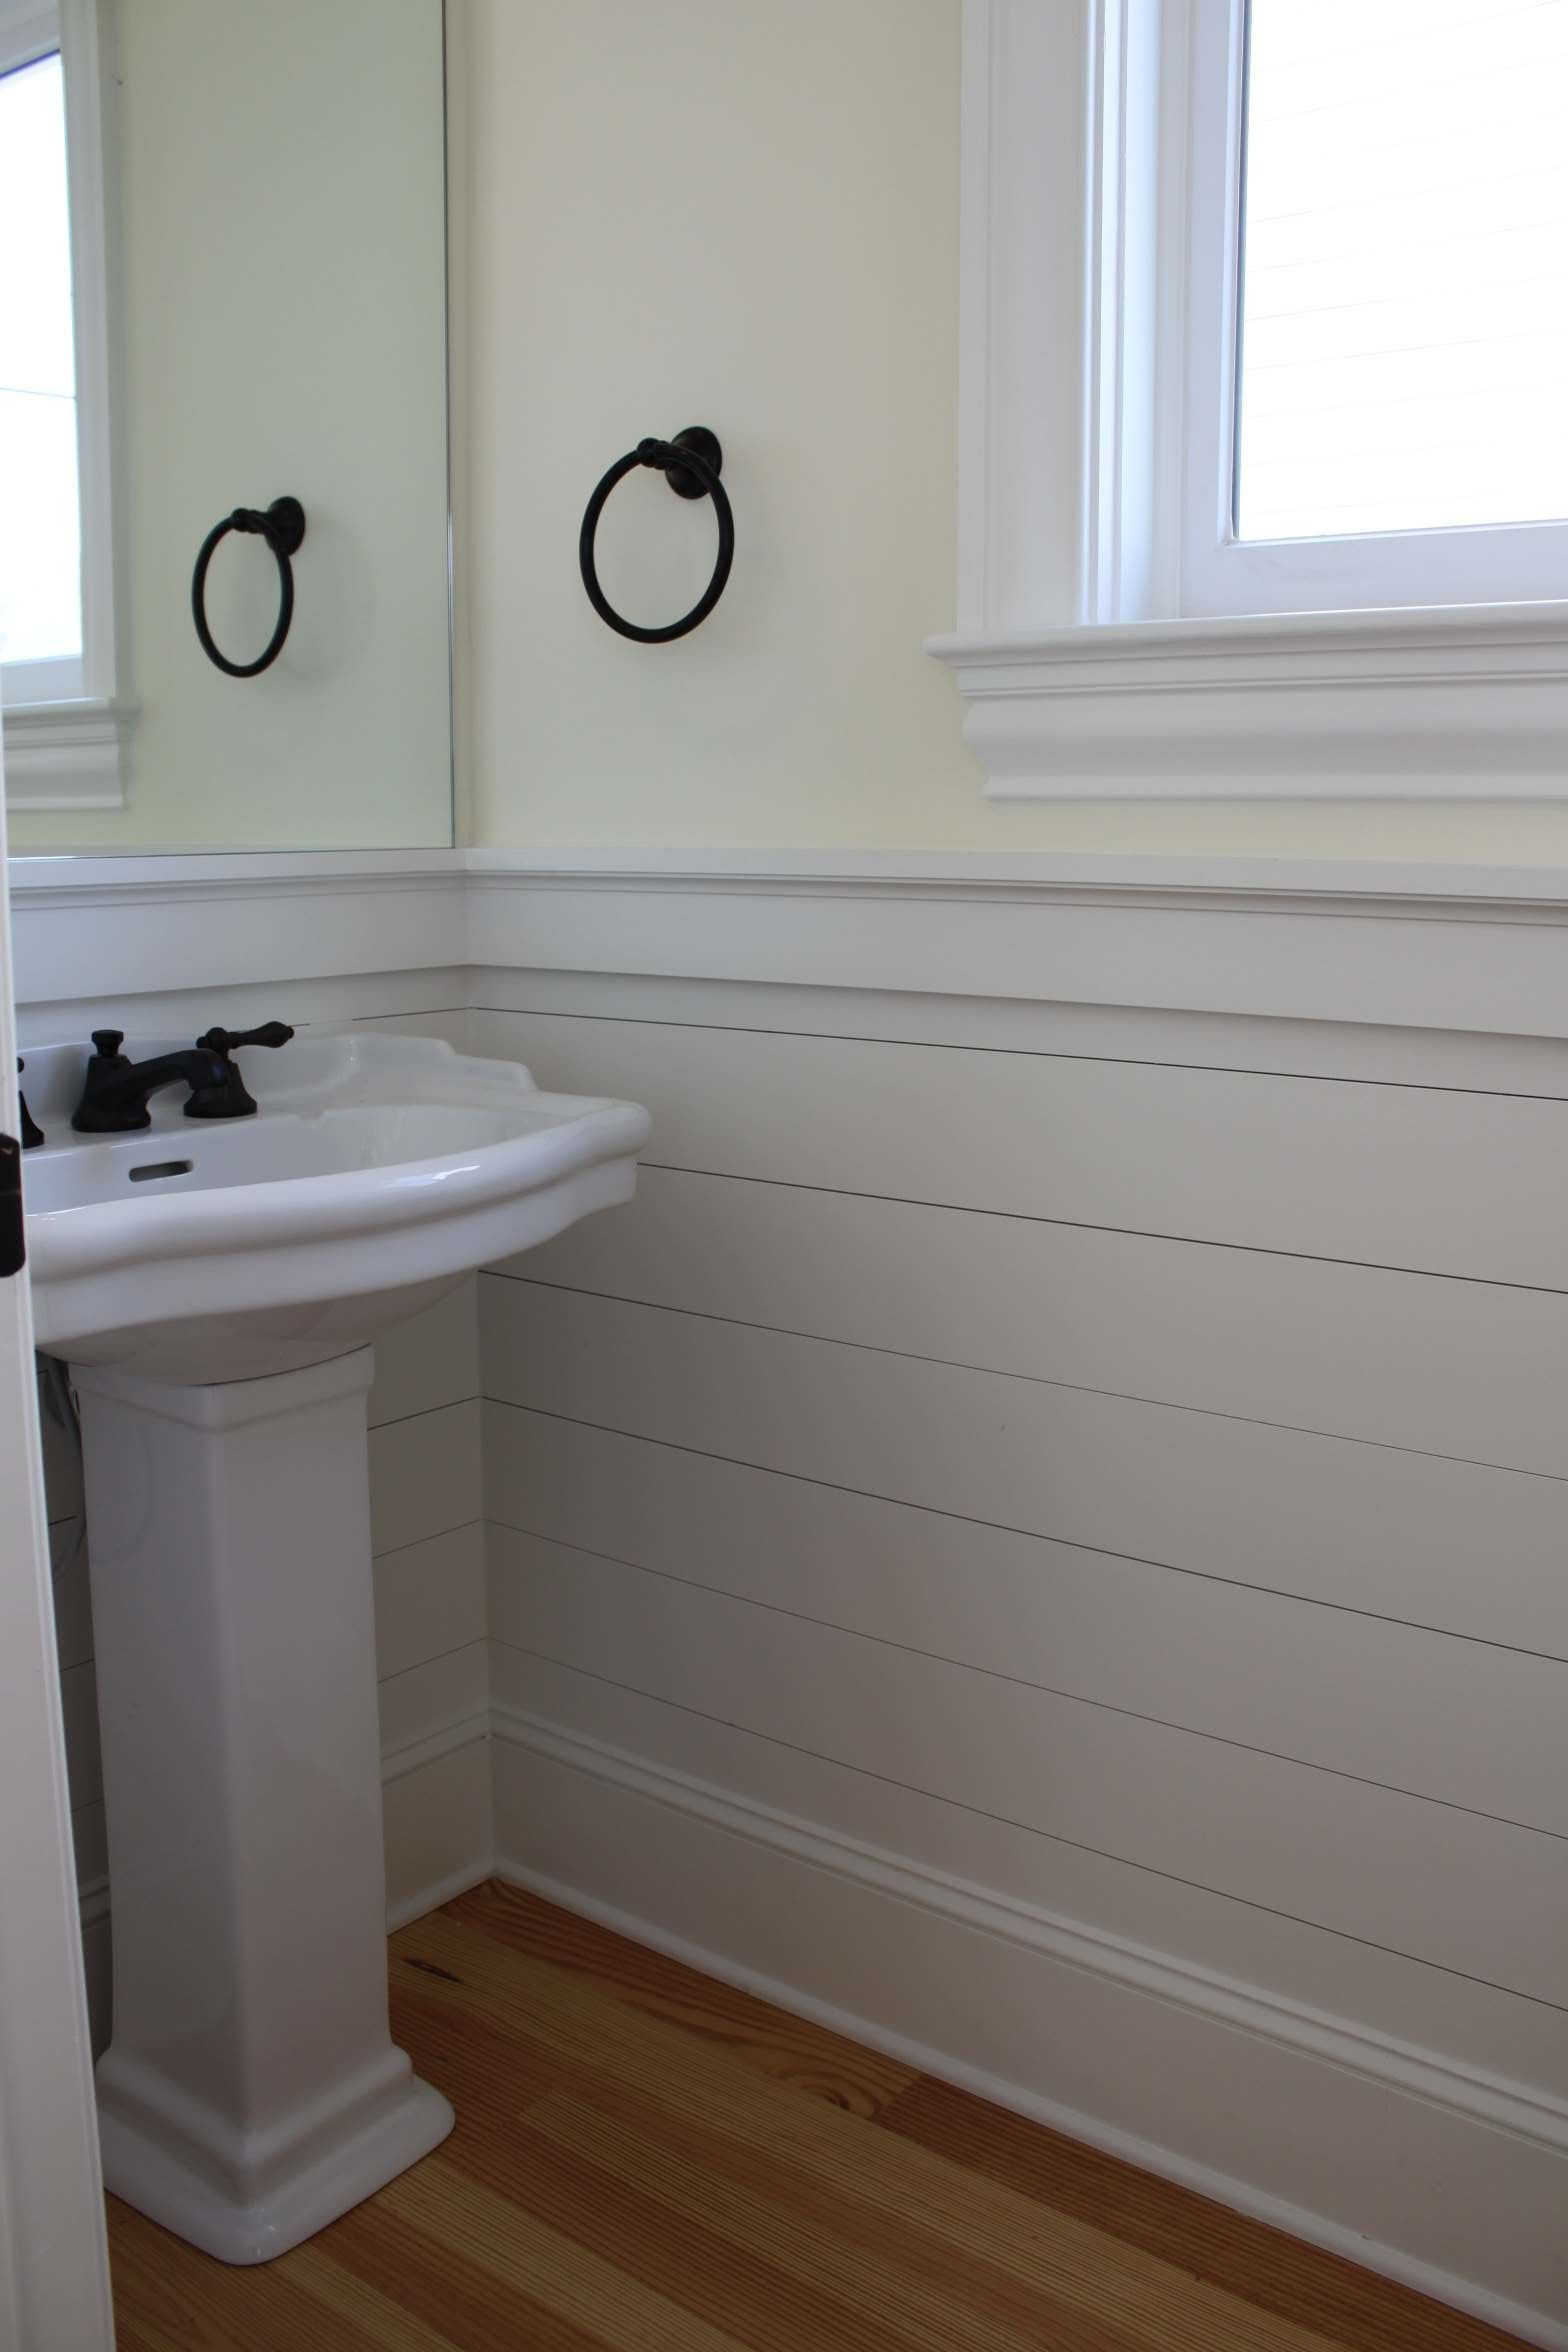 20 Beautifully Smooth Streamlined Walls Designed By Tongue Groove Paneling Bathroom Wall Ideaswainscoting